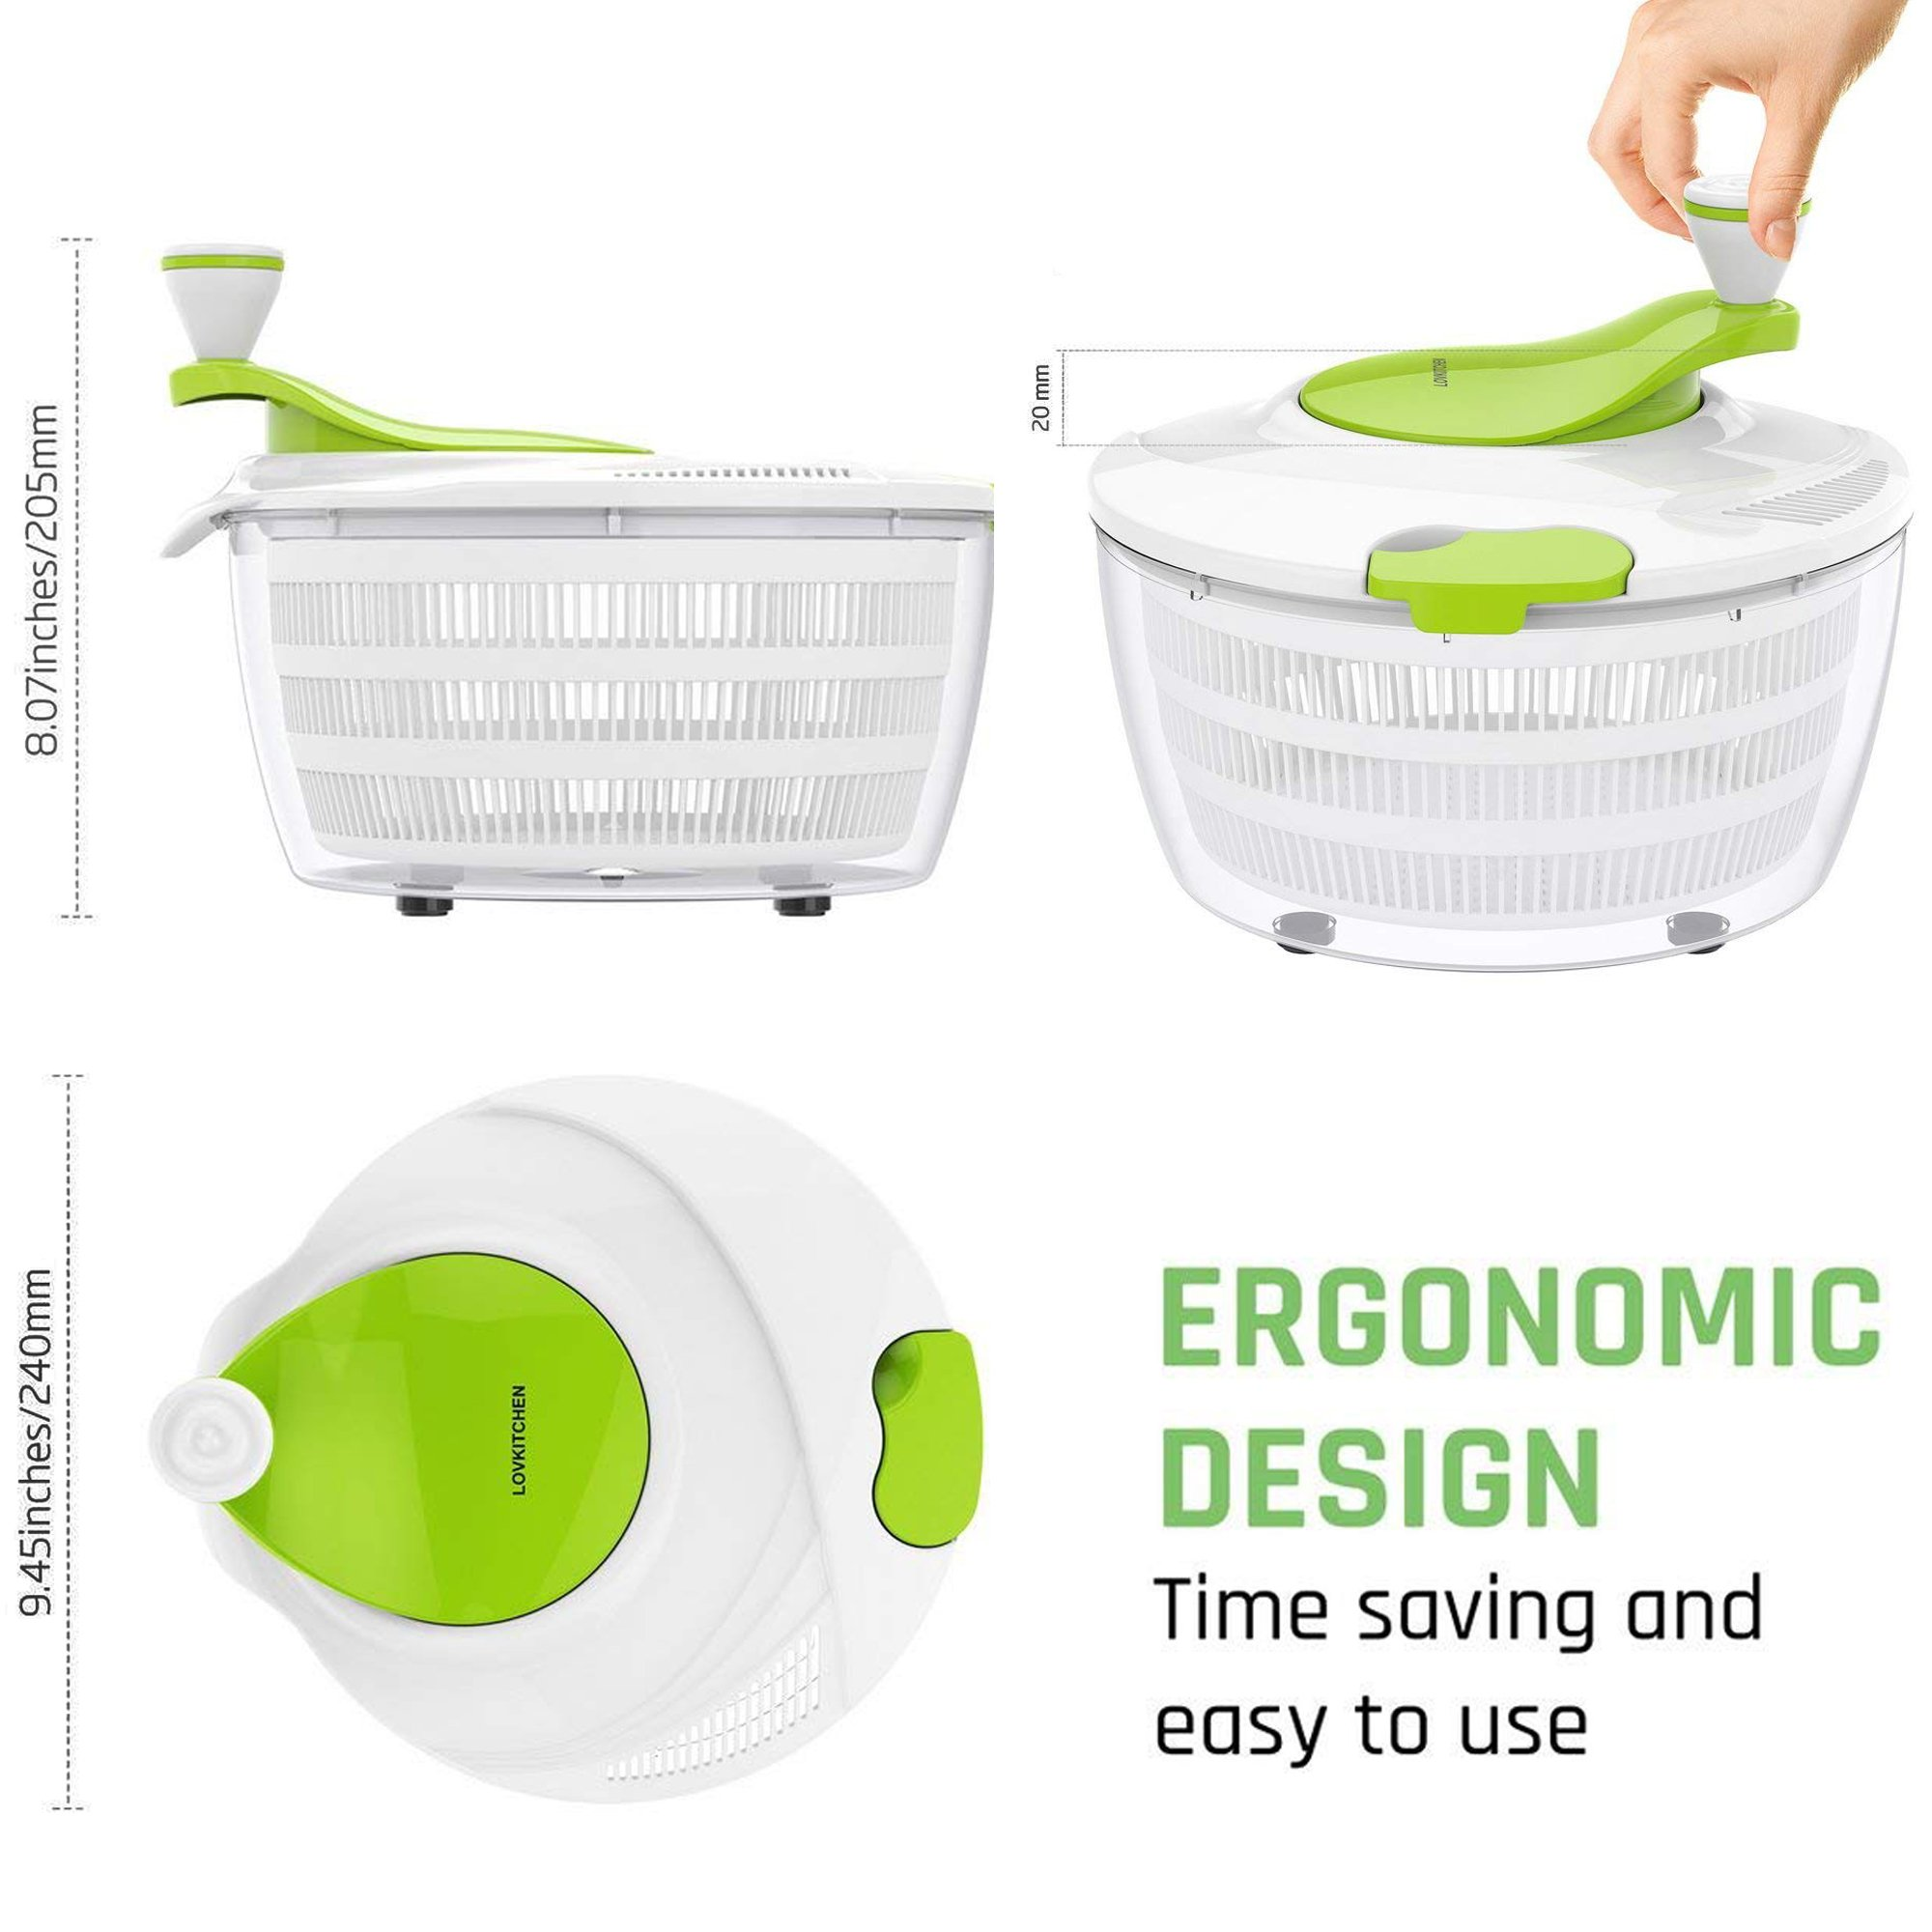 Salad Spinner Dryer,LOVKITCHEN Vegetables & Fruits Dryer with Large 4 Quarts & Quick Dry Design BPA,Ease for Tastier Salads and Faster Food Prep by Lovkitchen (Image #2)